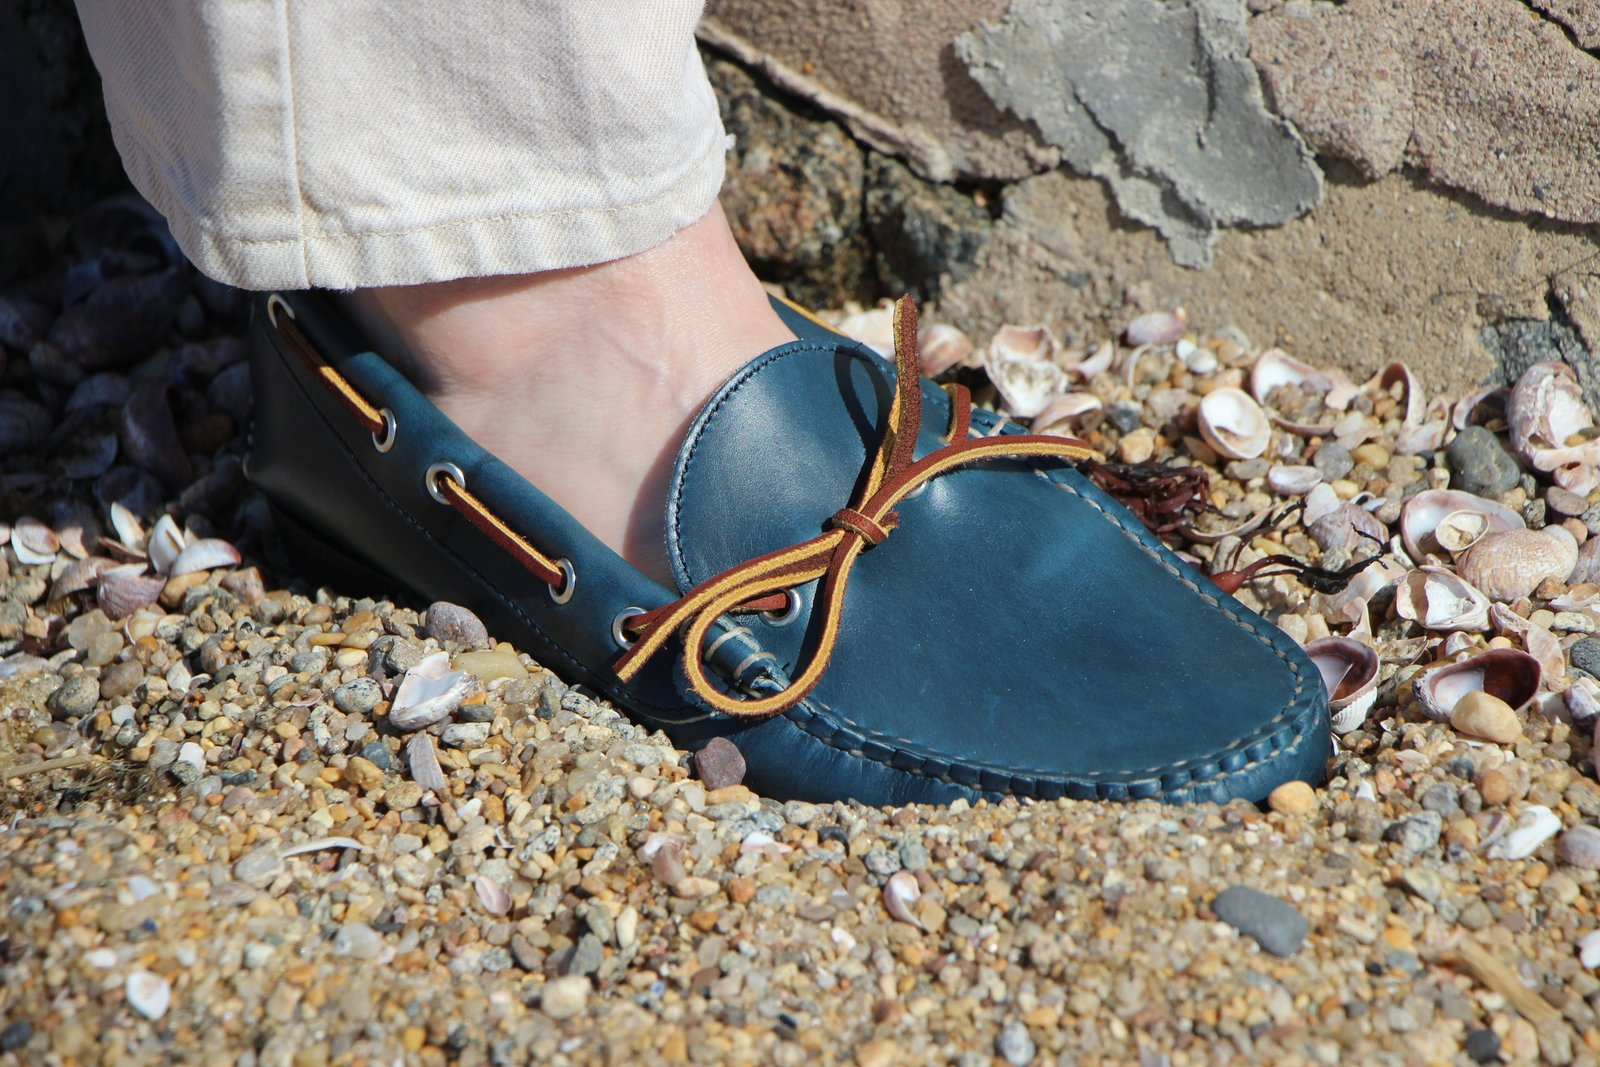 3b0a4f27d5f A camp moc for men and women the quoddy canoe shoe made in maine JPG  1600x1067